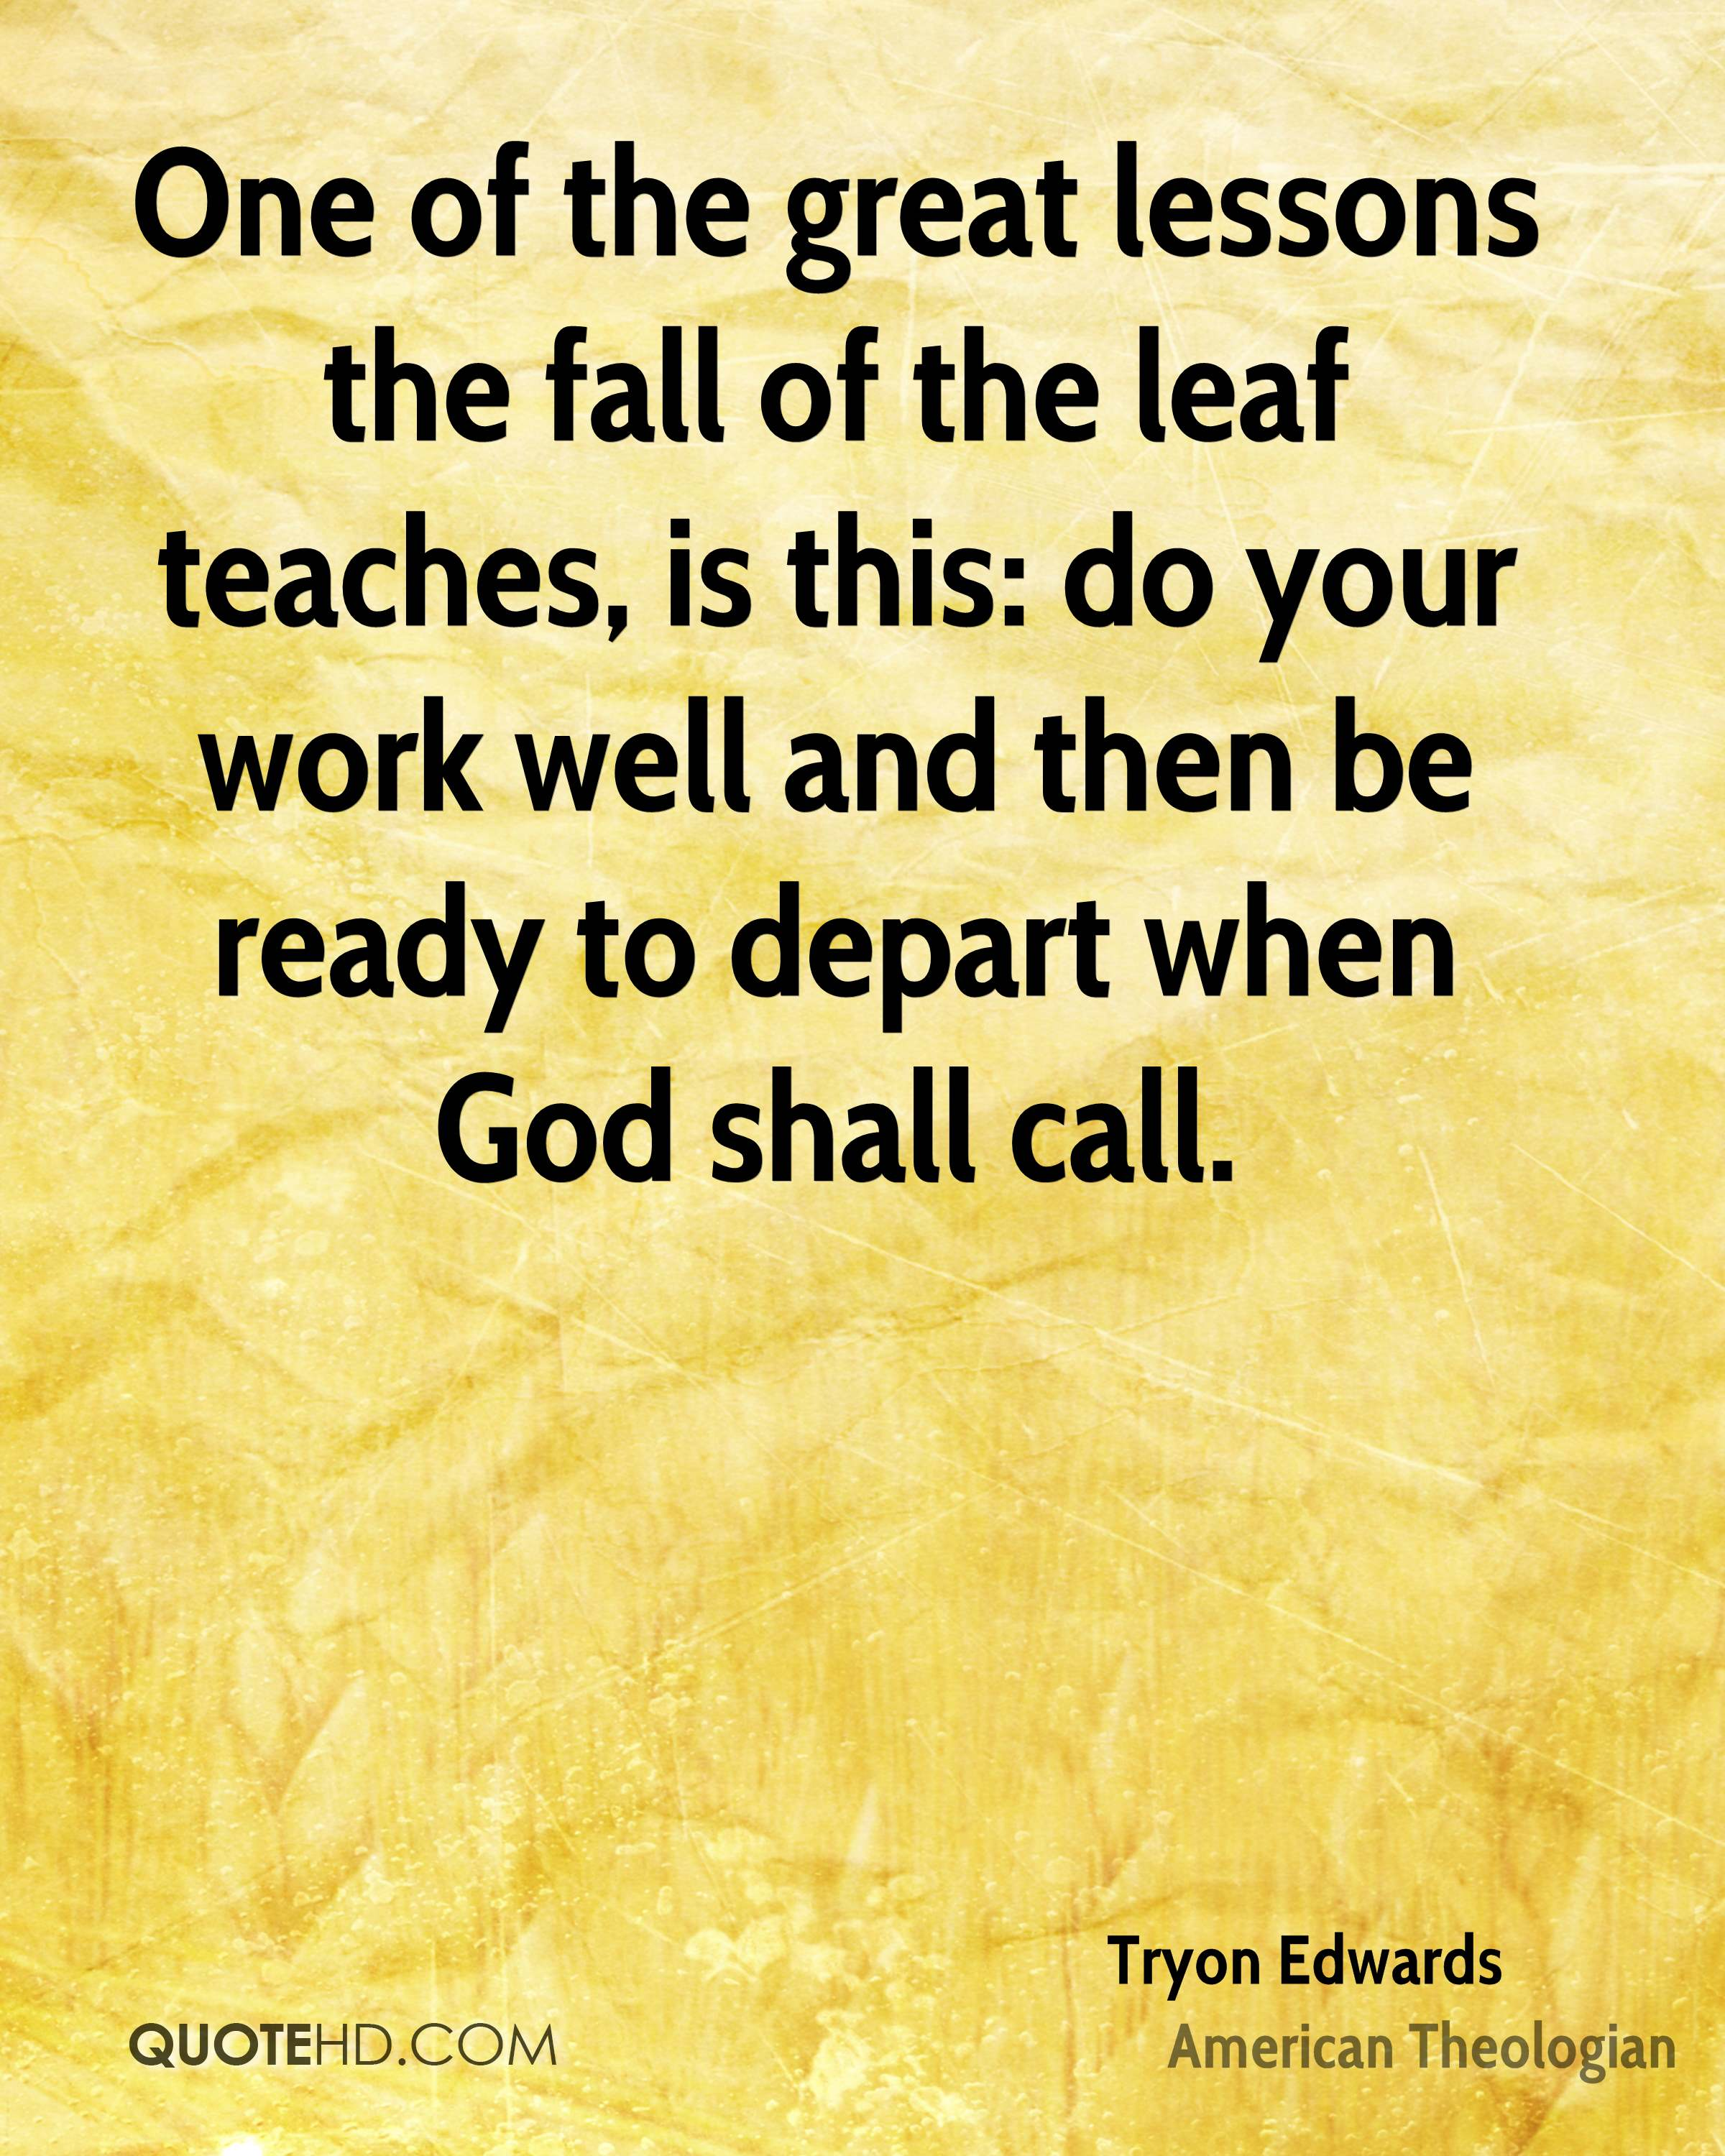 One of the great lessons the fall of the leaf teaches, is this: do your work well and then be ready to depart when God shall call.